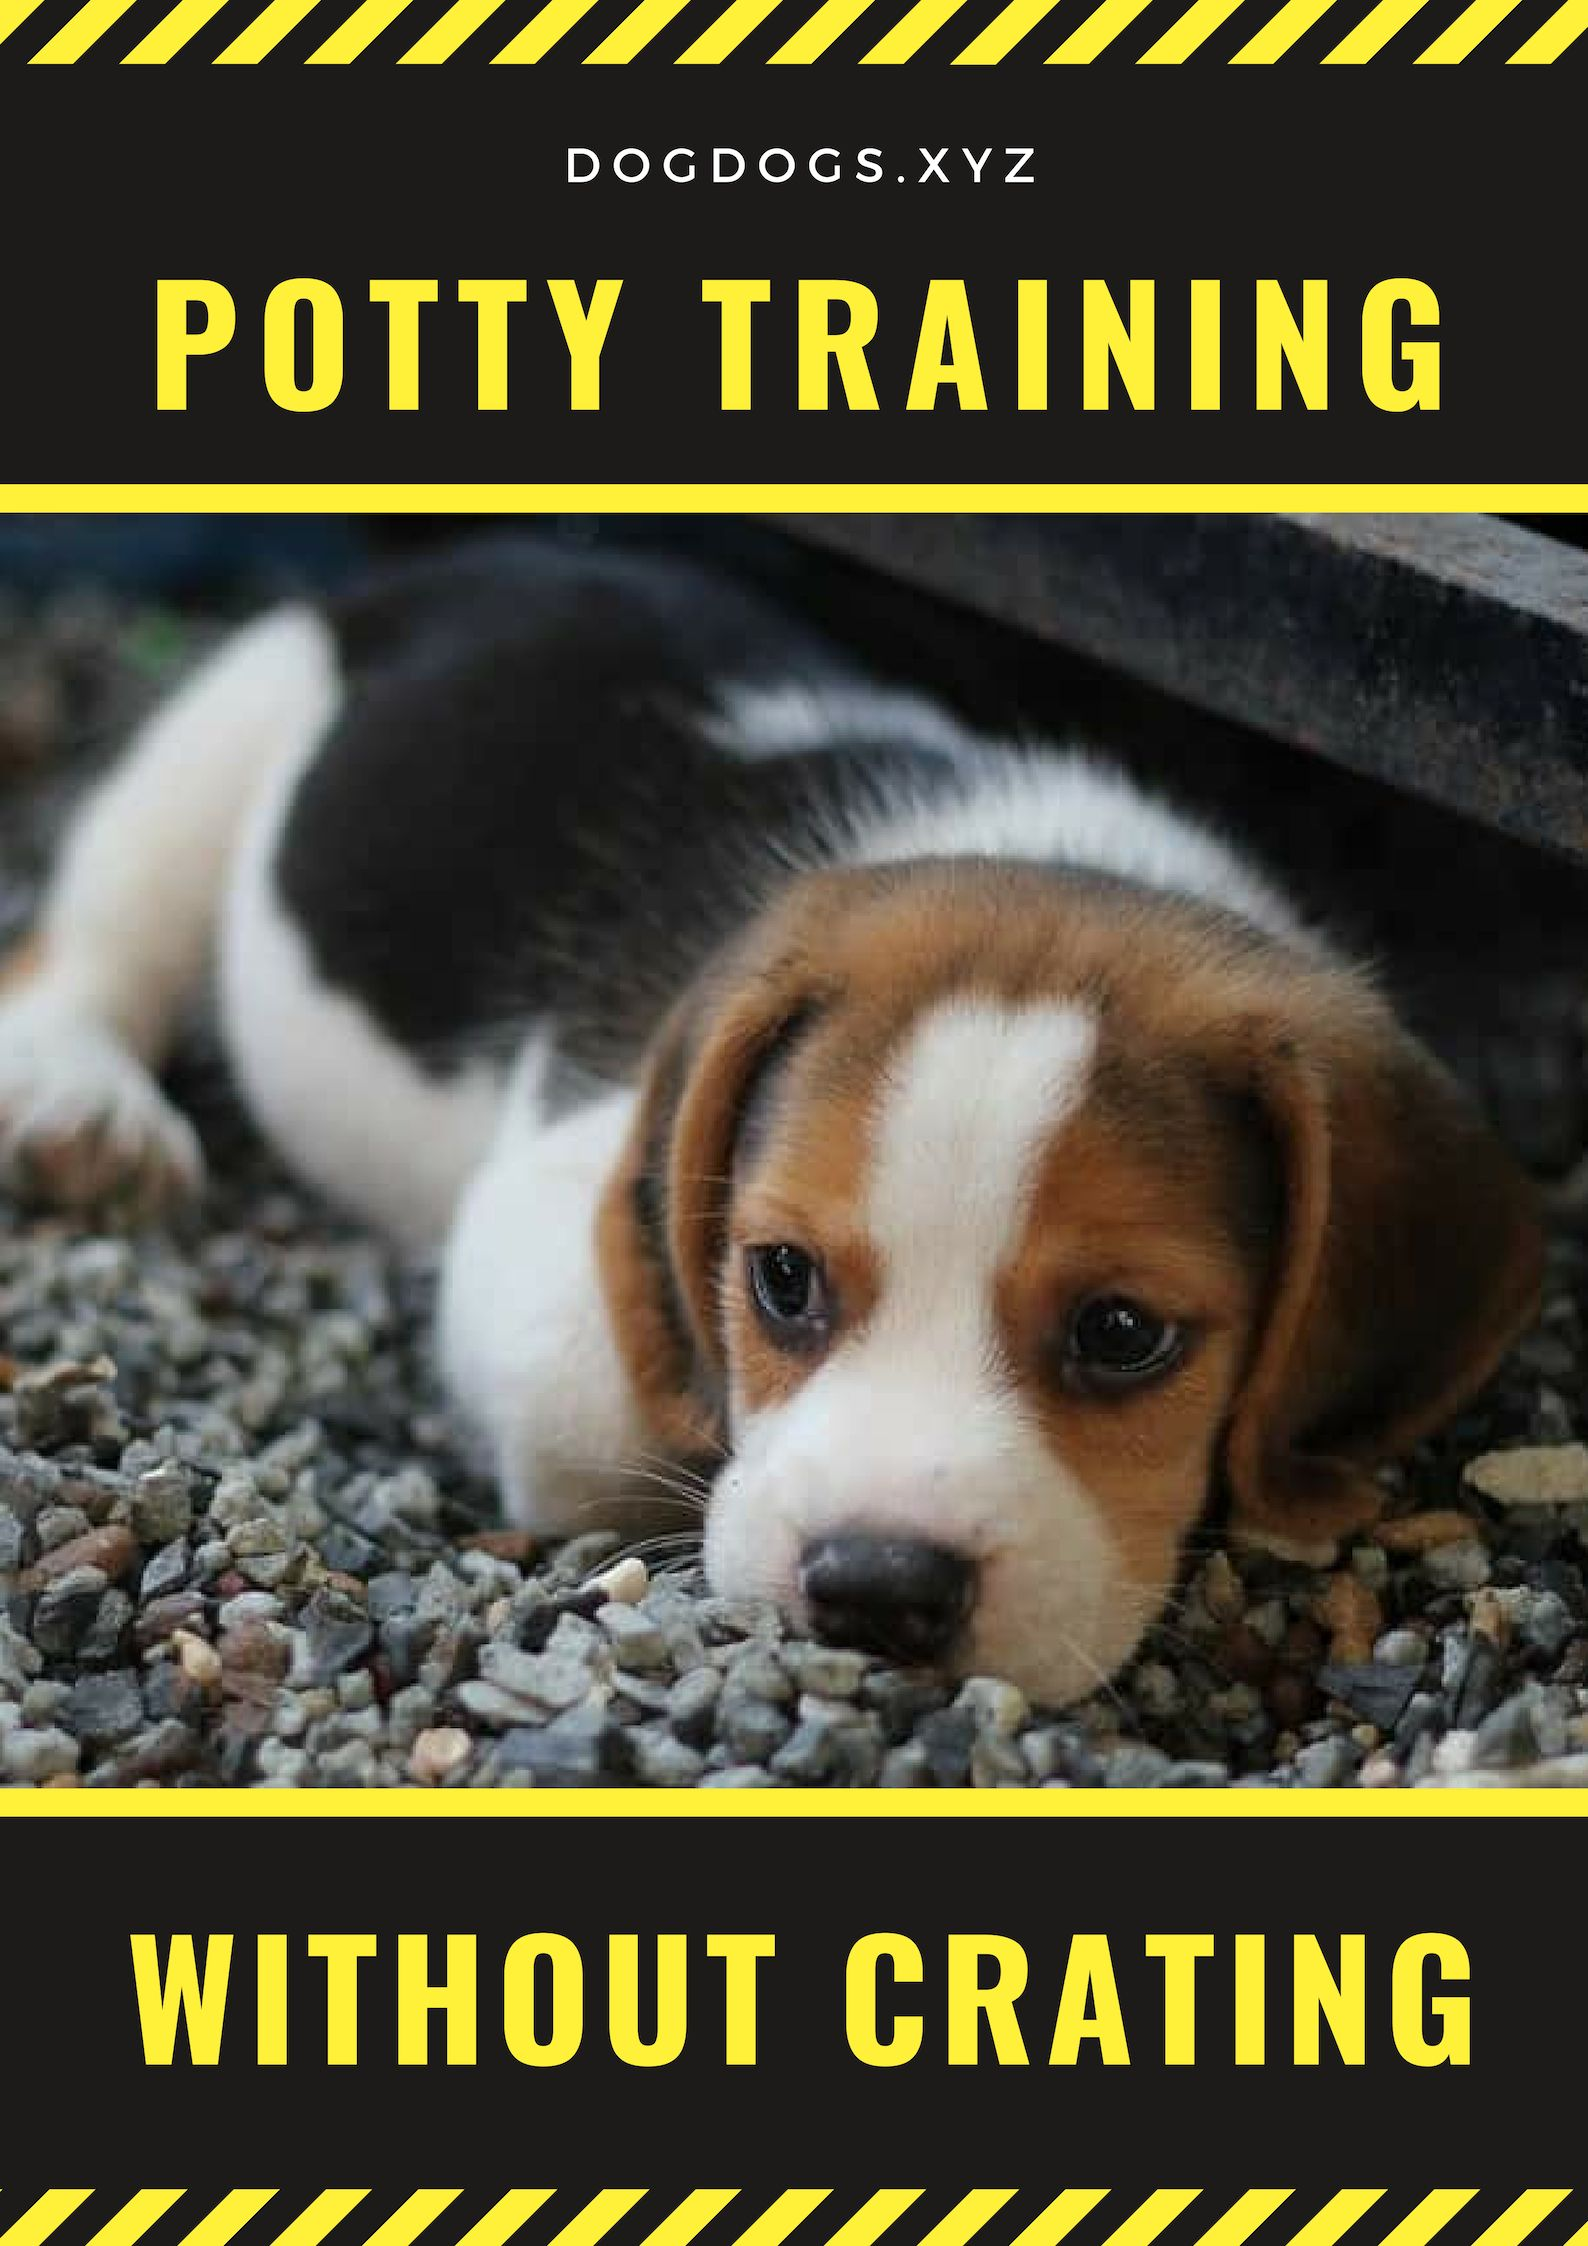 When Potty Training Puppies You Can Expect That There Would